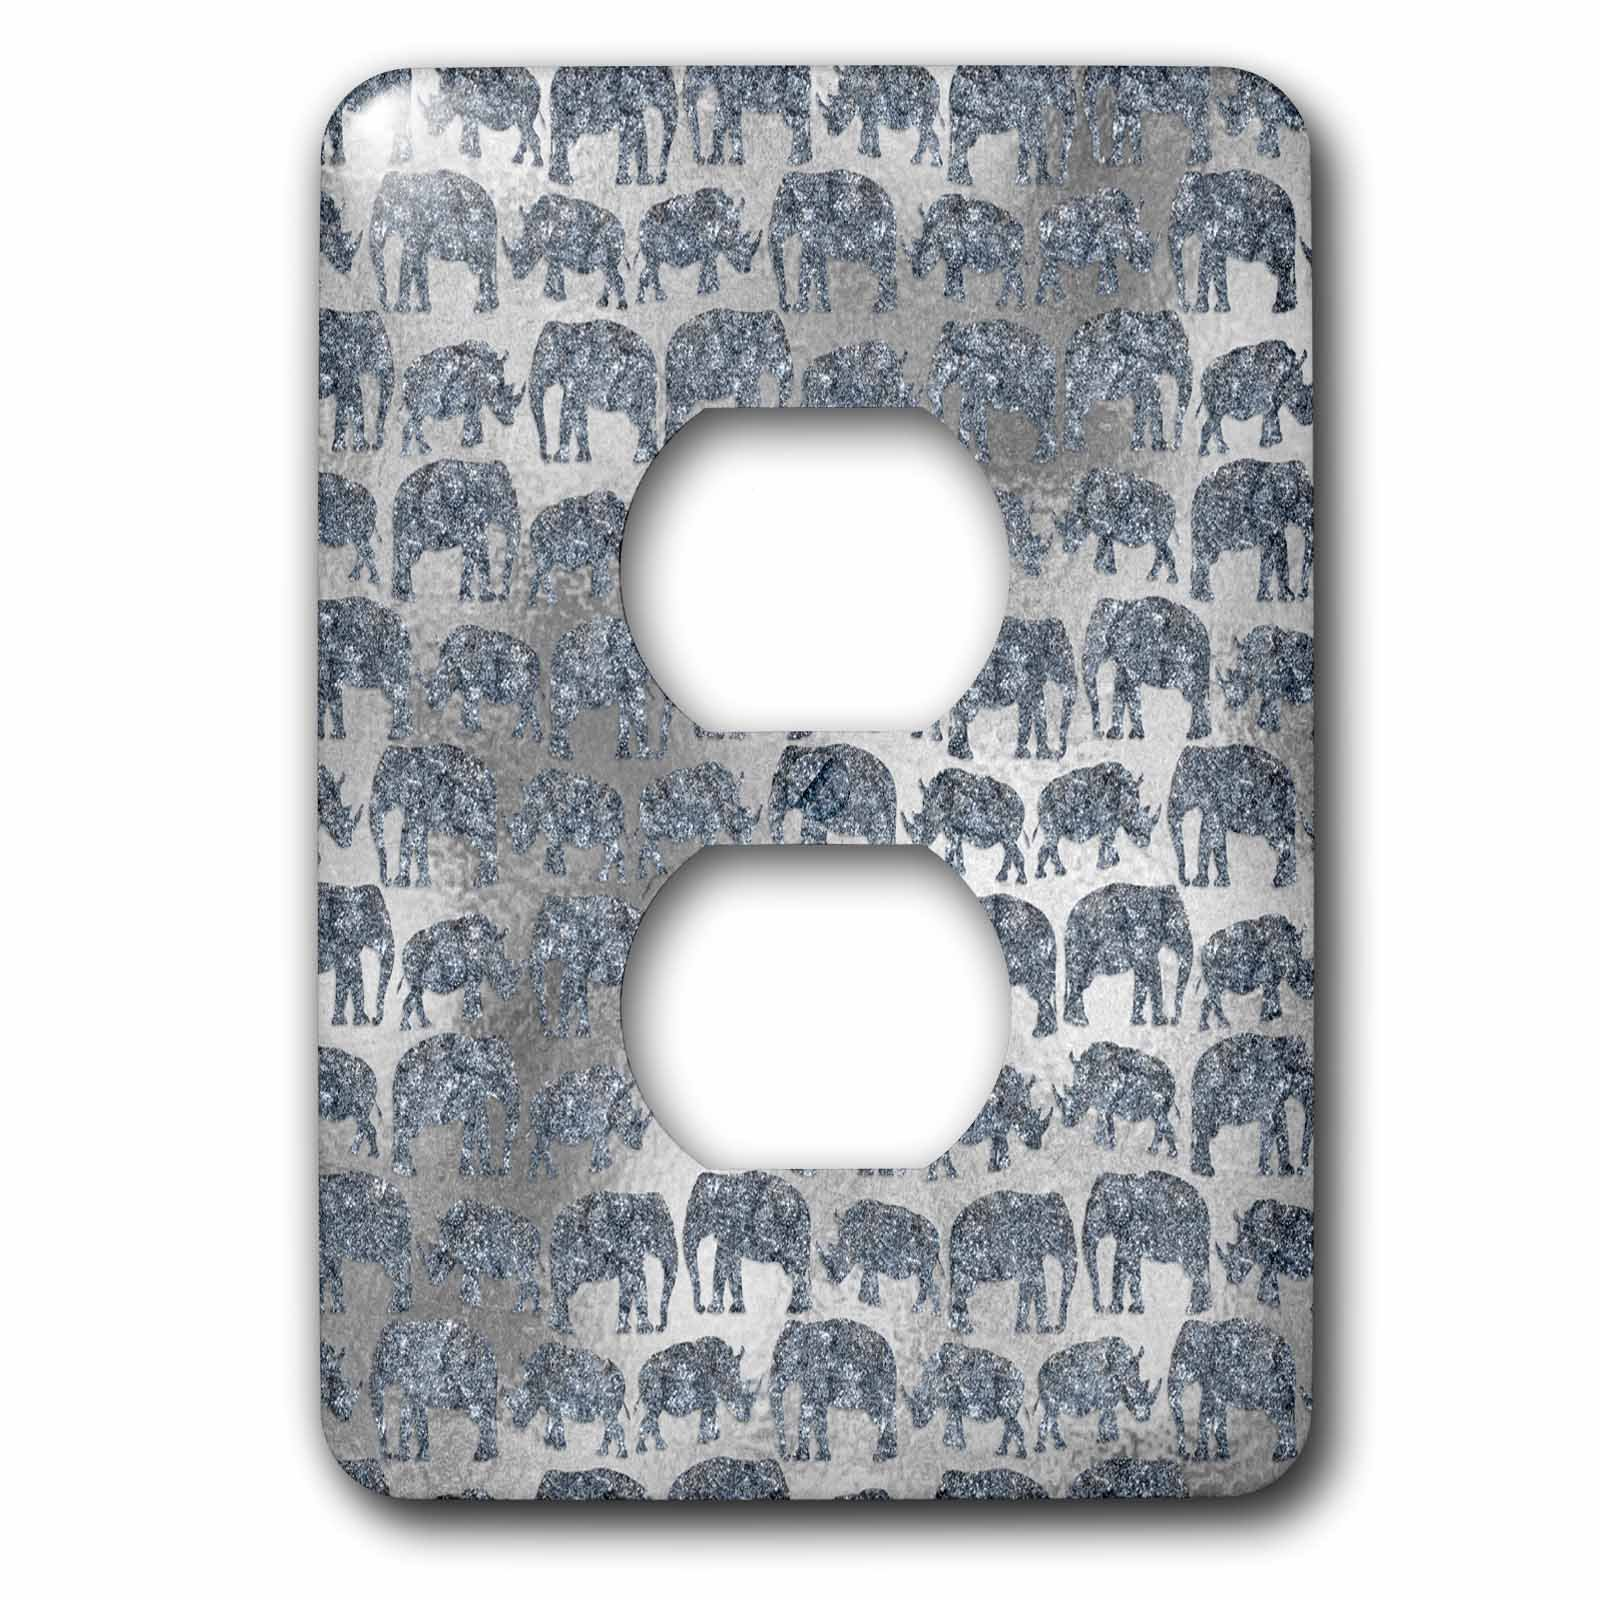 3dRose LSP_269042_6 Luxury Silver Shiny Chic Animal Elephant Africa Safari Pattern Plug Outlet Cover, Mixed